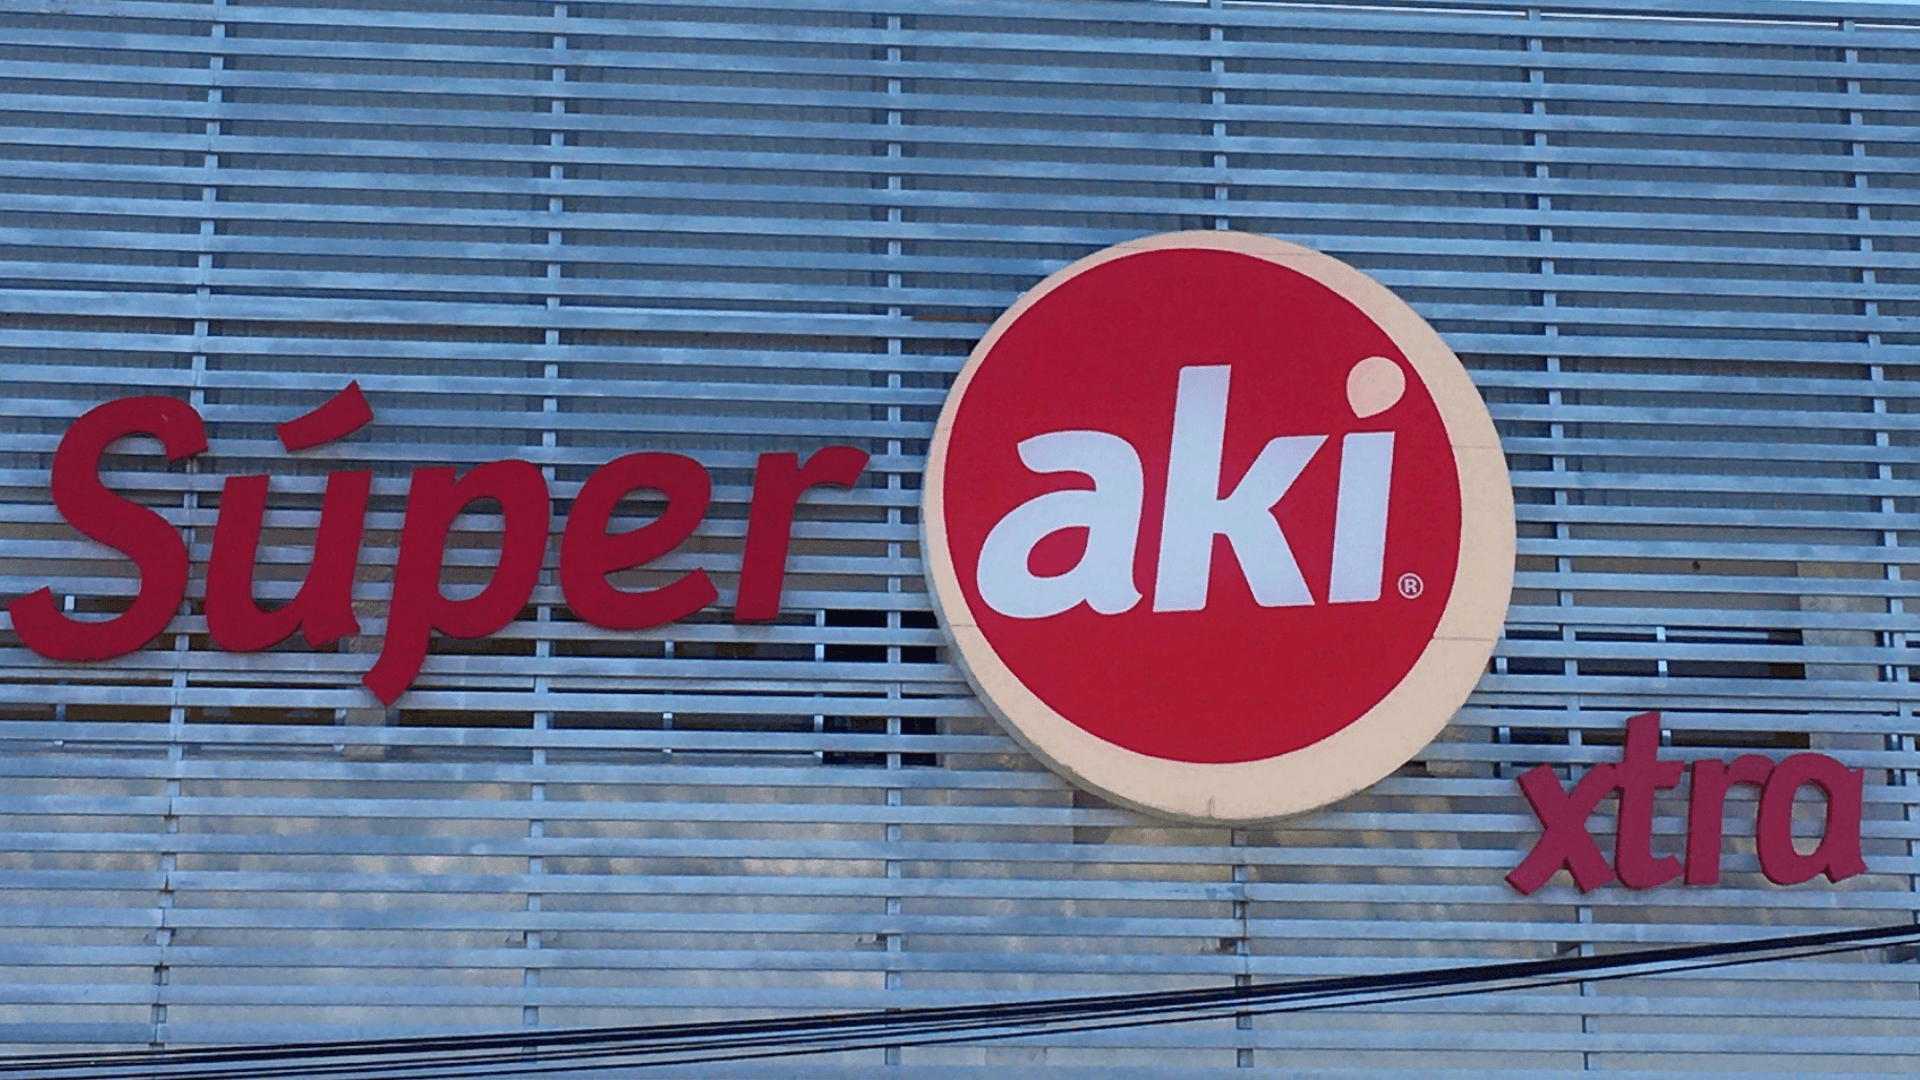 Super Aki grocery stores in Mérida Mexico